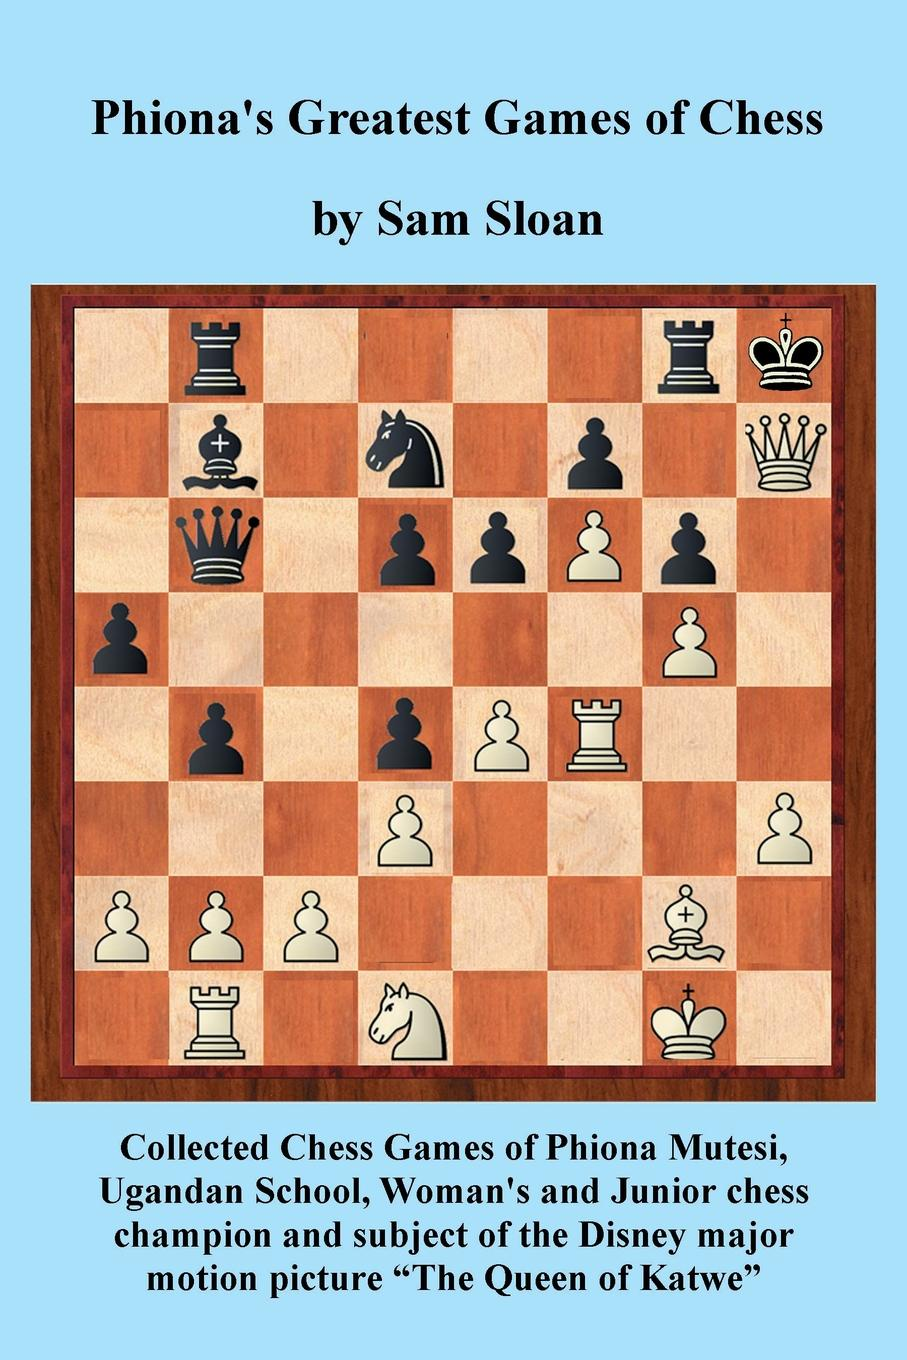 Sam Sloan Phiona's Greatest Games of Chess. Collected Chess Games of Phiona Mutesi, Ugandan School, Woman's and Junior chess champion and subject of the Disney motion picture The Queen of Katwe guliev s veselin topalov selected games of ex world chess champion